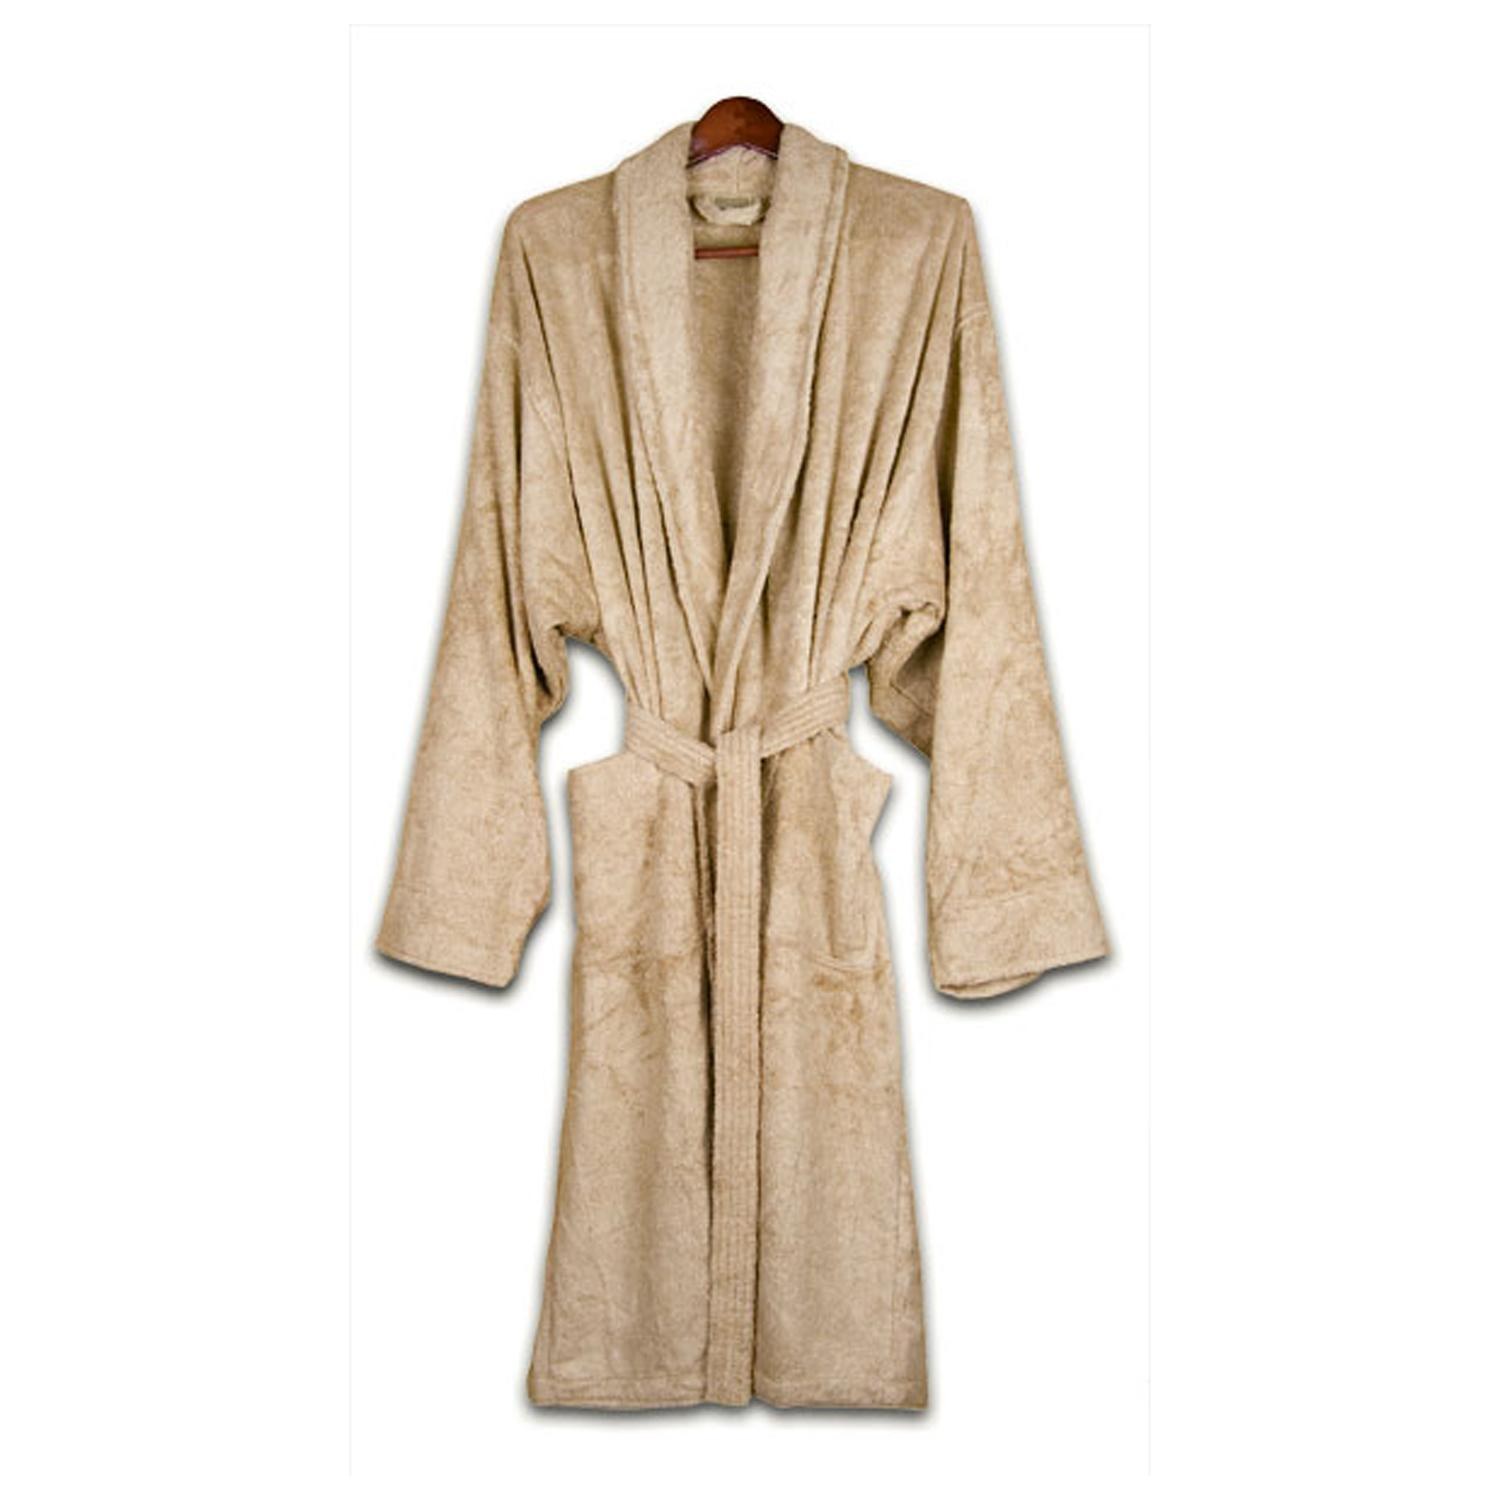 Unisex Turkish Organic Cotton Terry Bath Robe - Au Natural